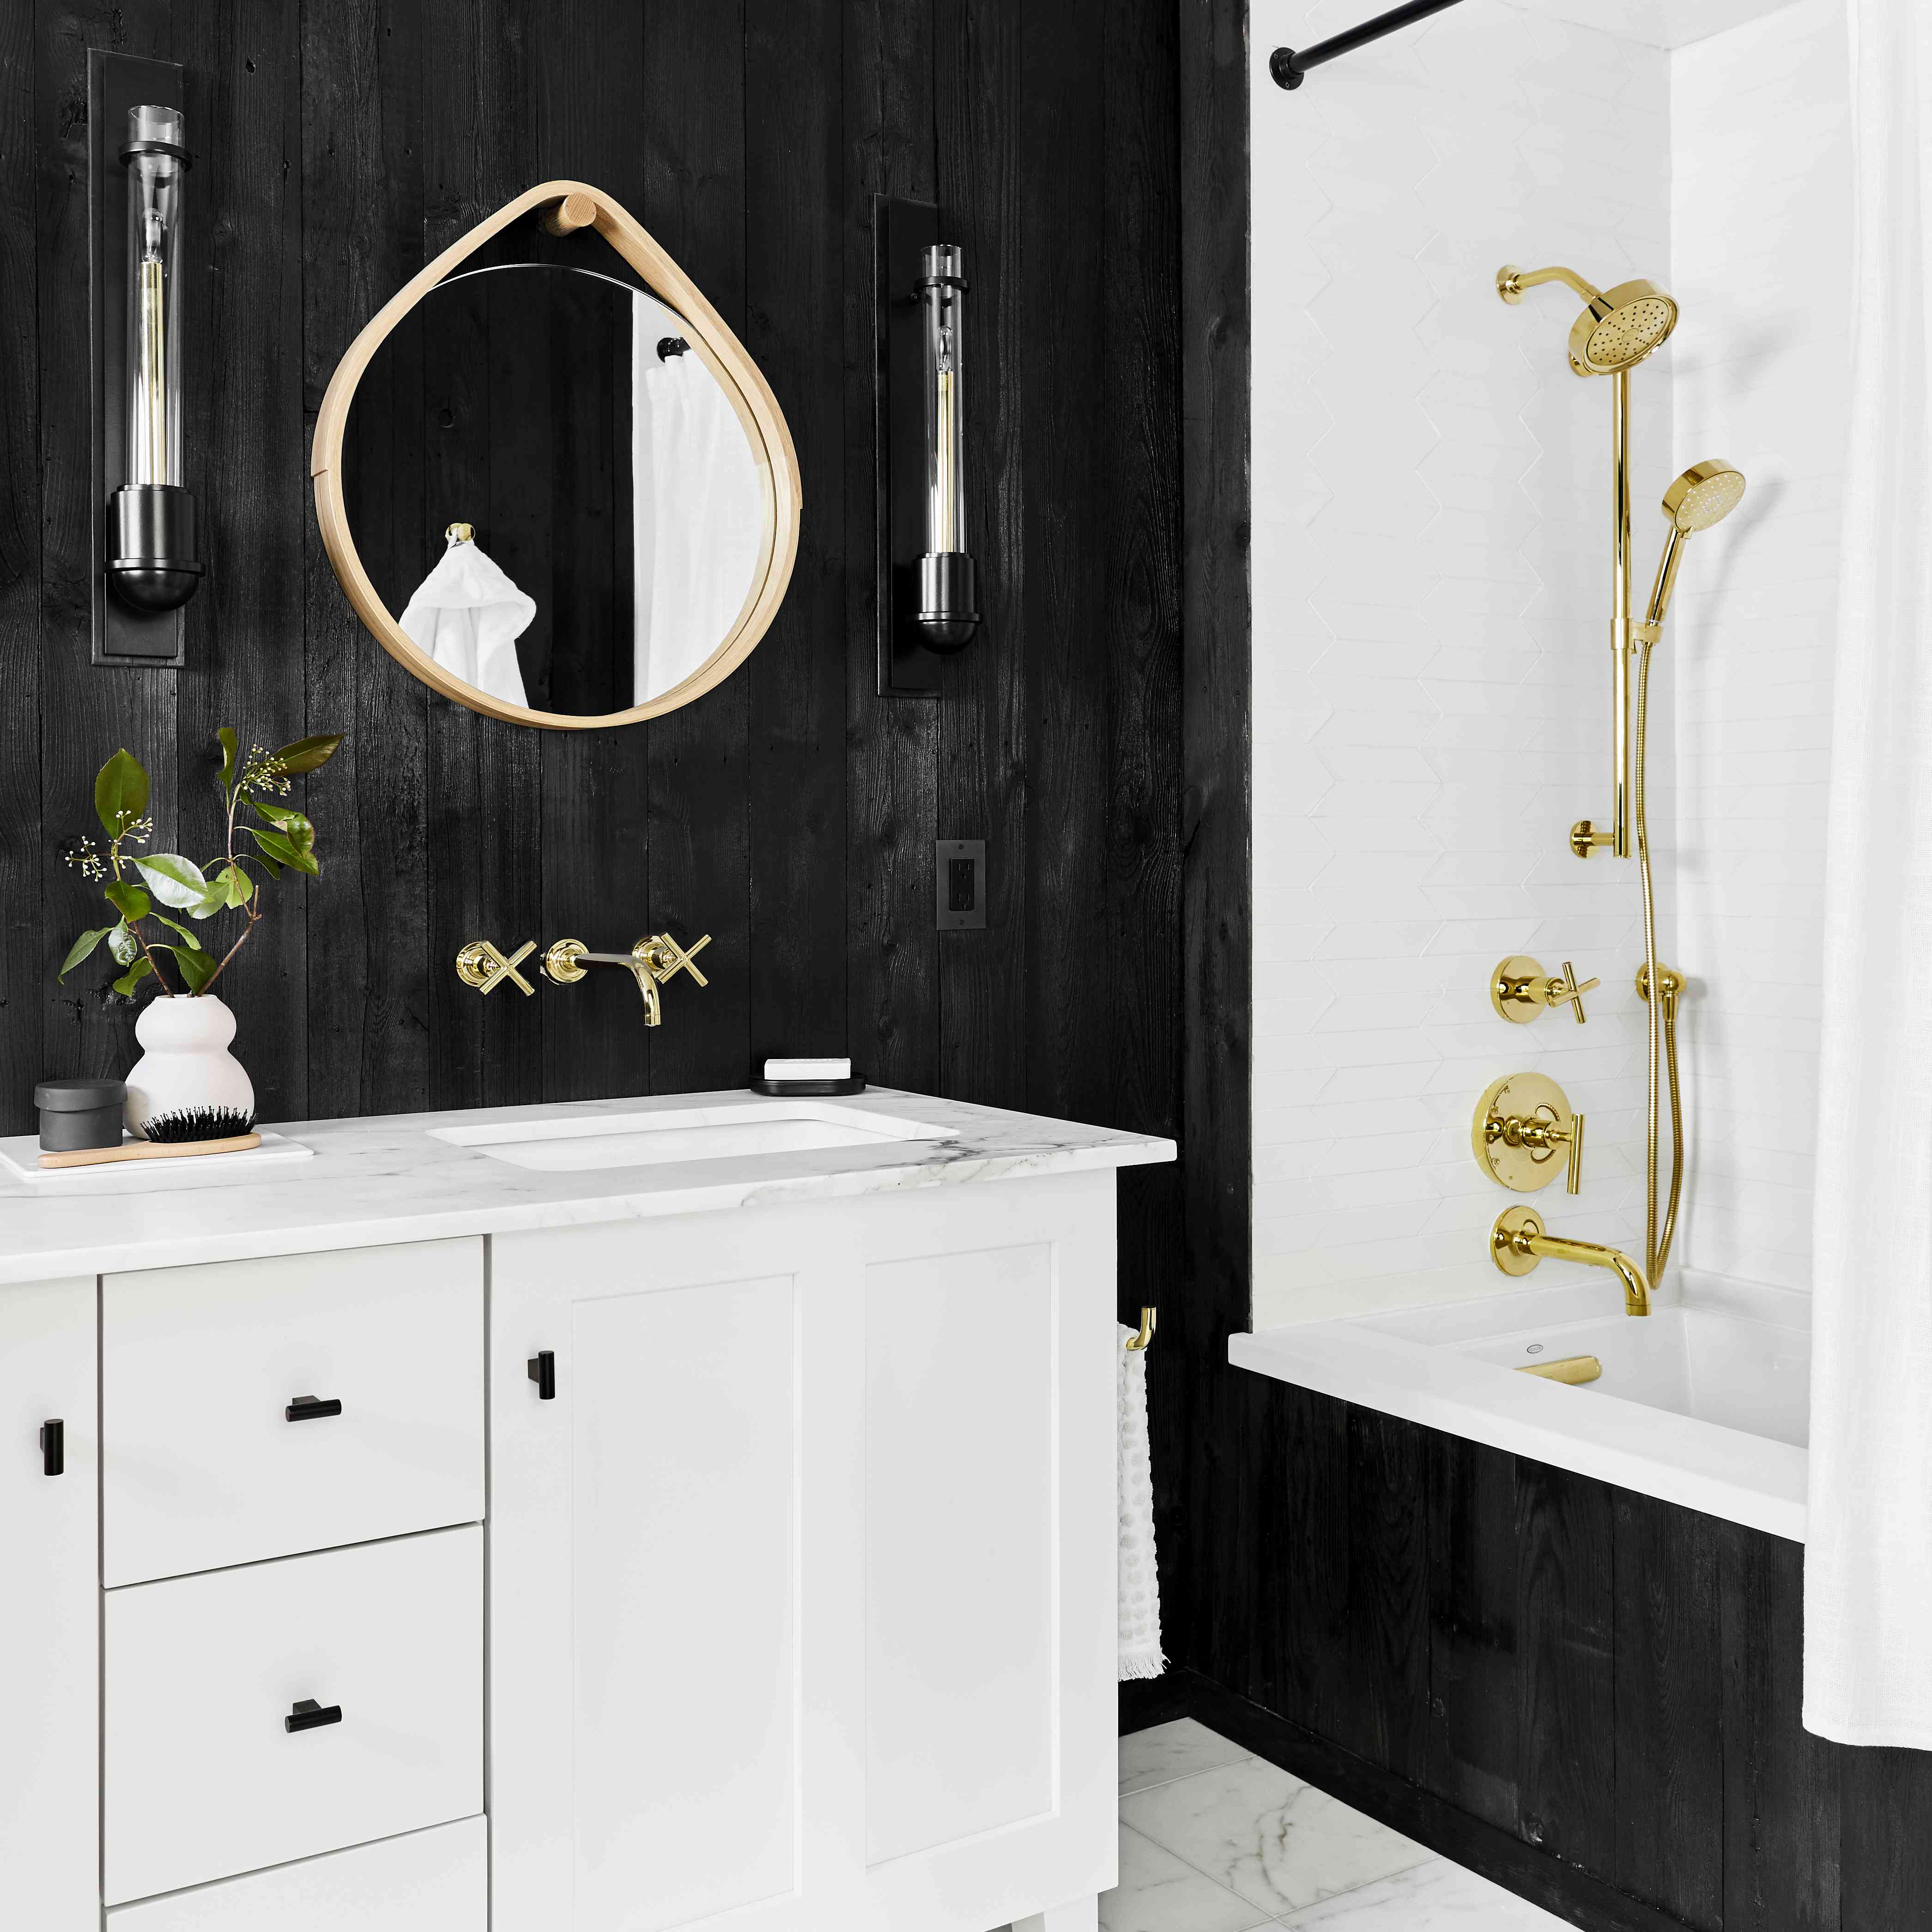 10 Stunning Black And White Bathrooms That Will Never Go Out of Style